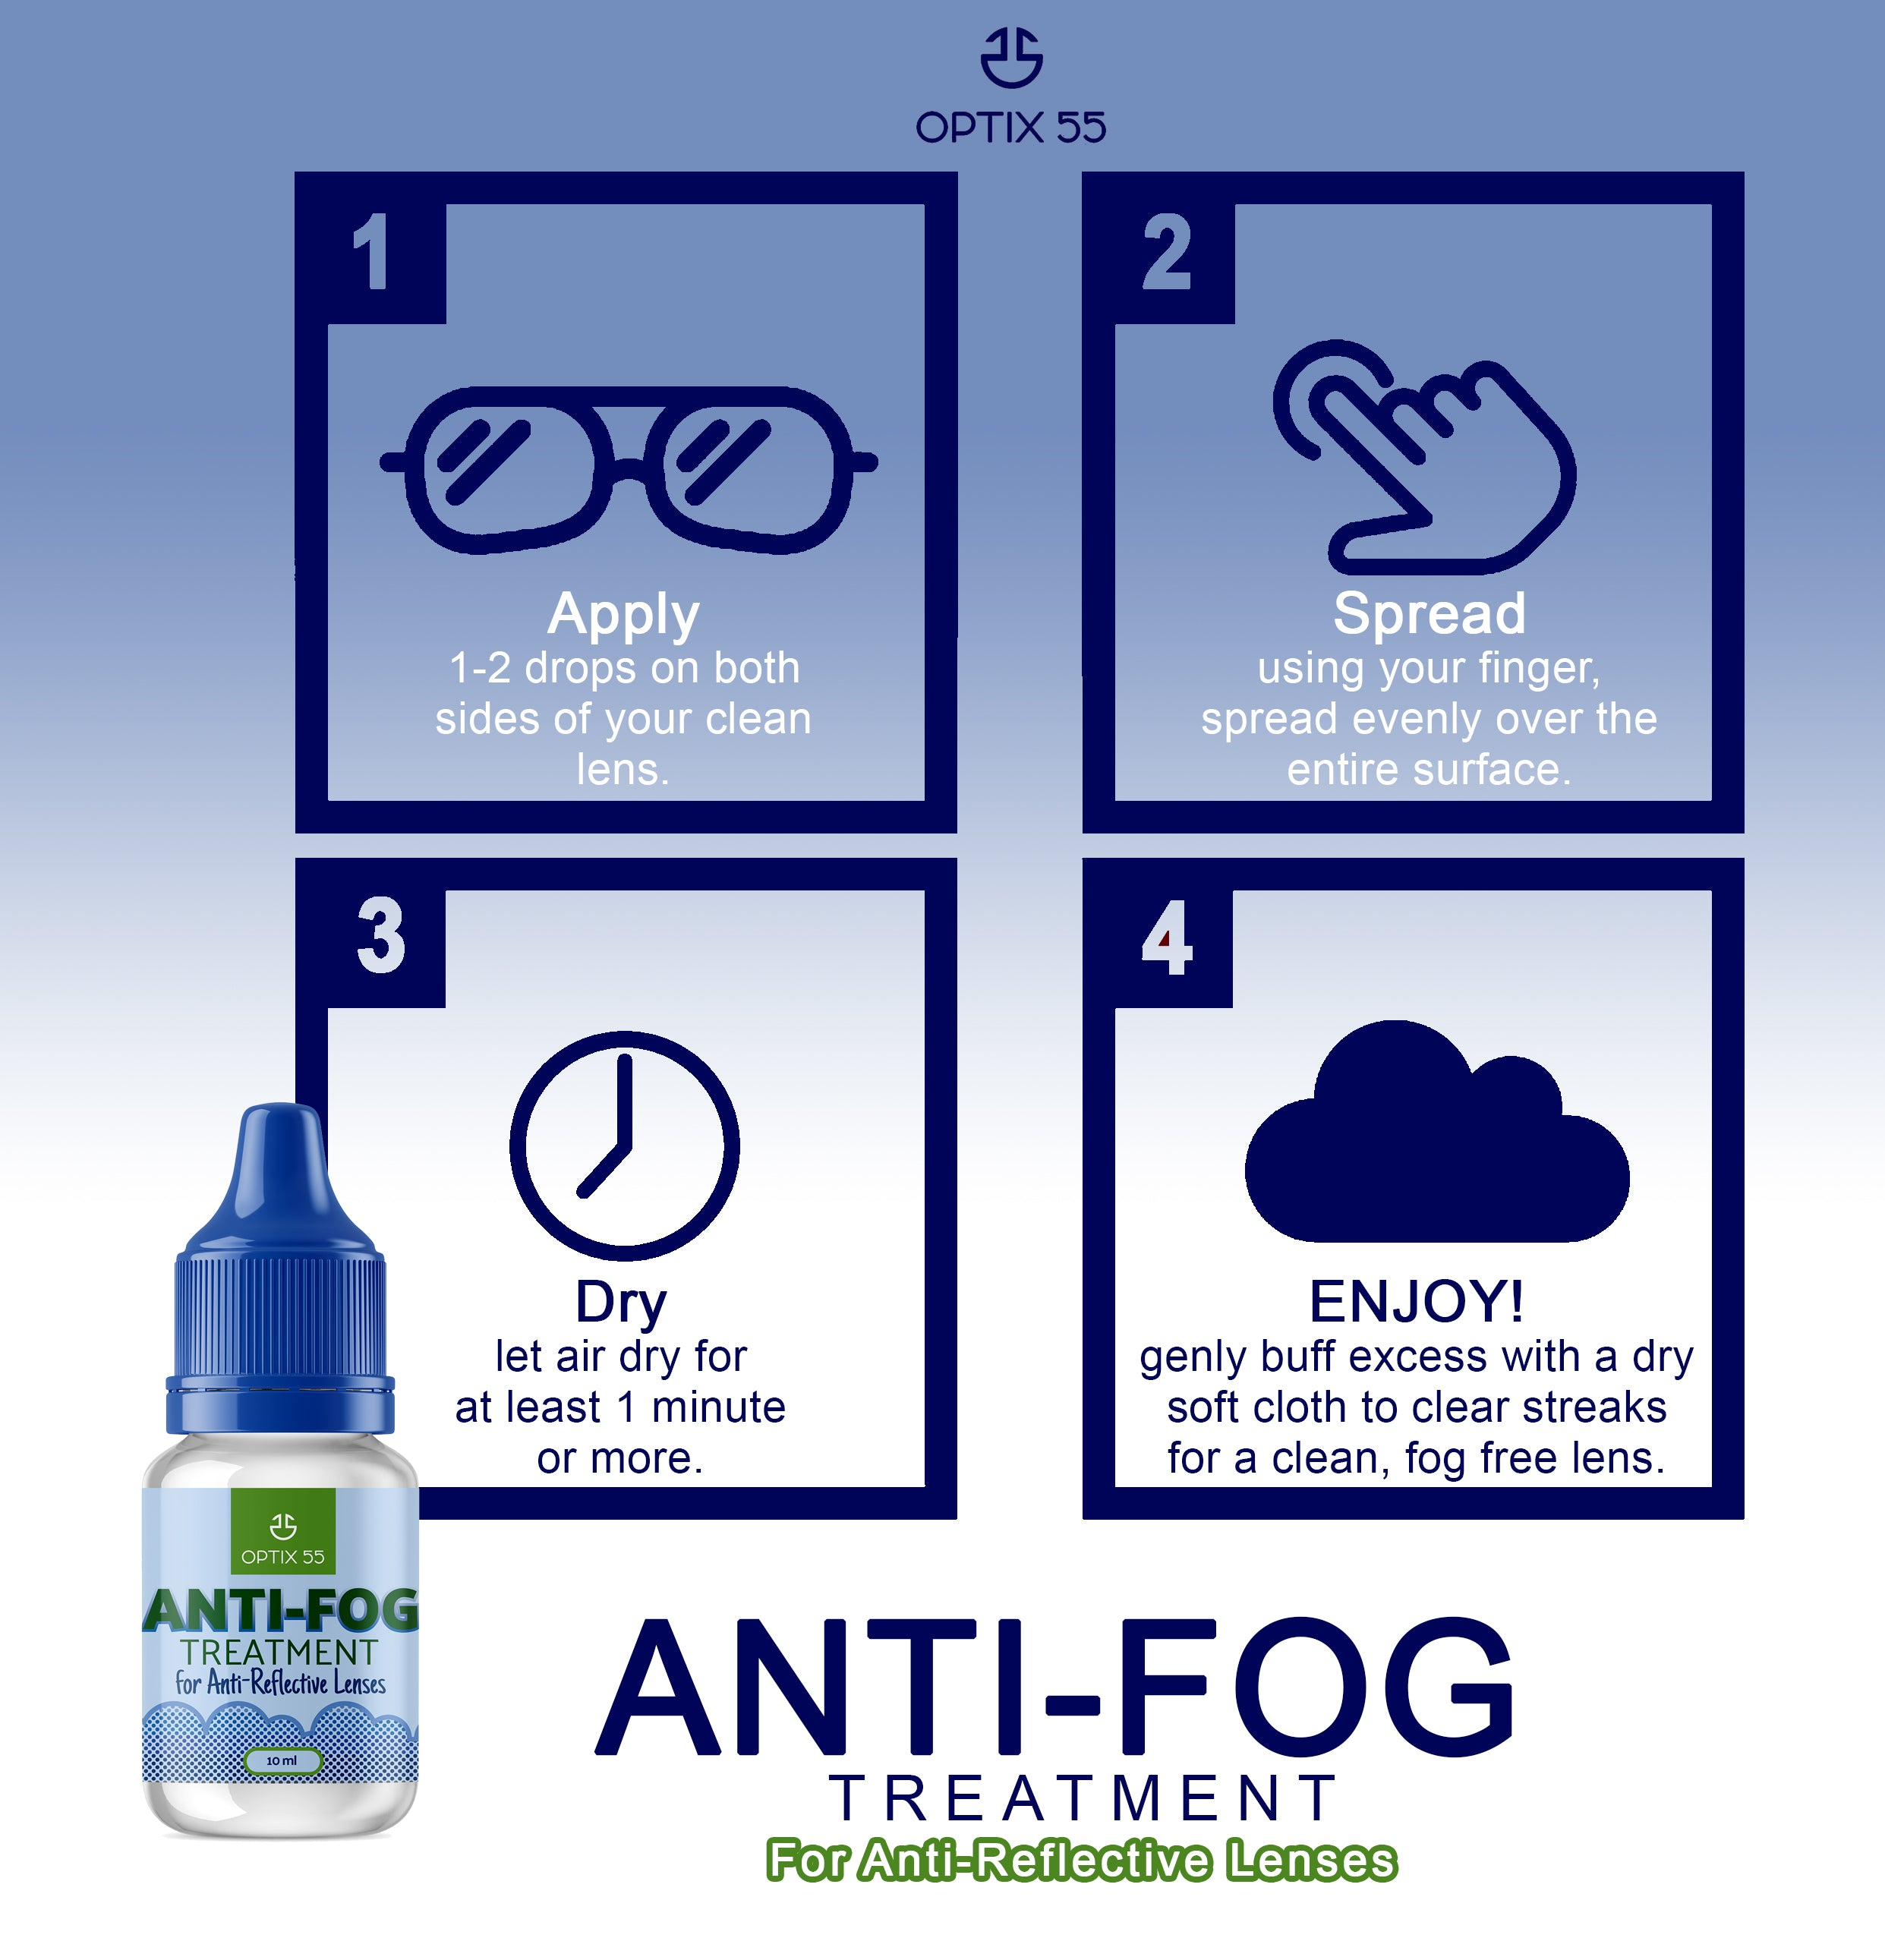 Anti-Fog Treatment for Anti-Reflective Lenses